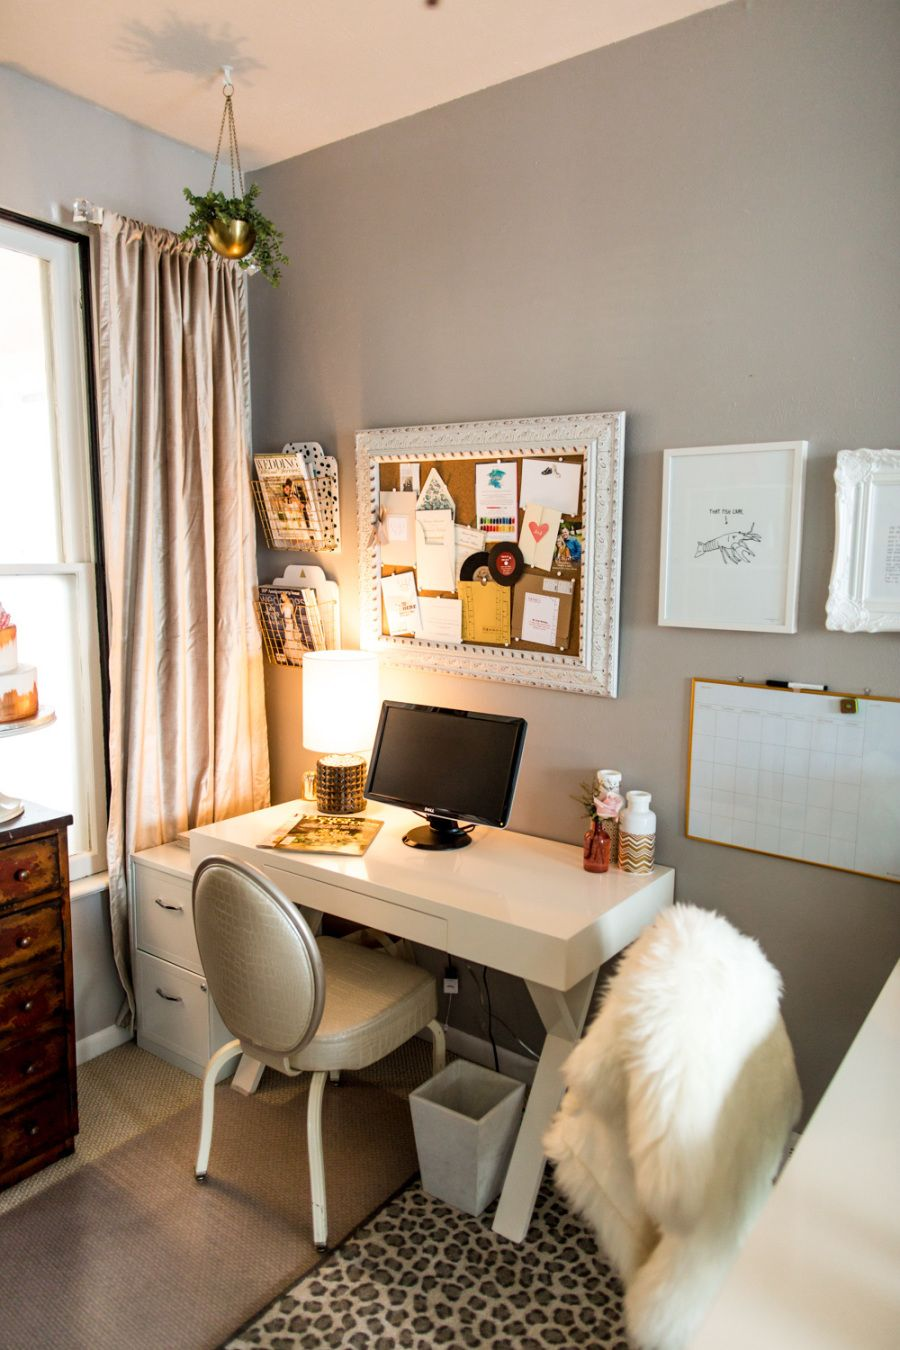 How to Live Large in a Small Office Space Small bedroom